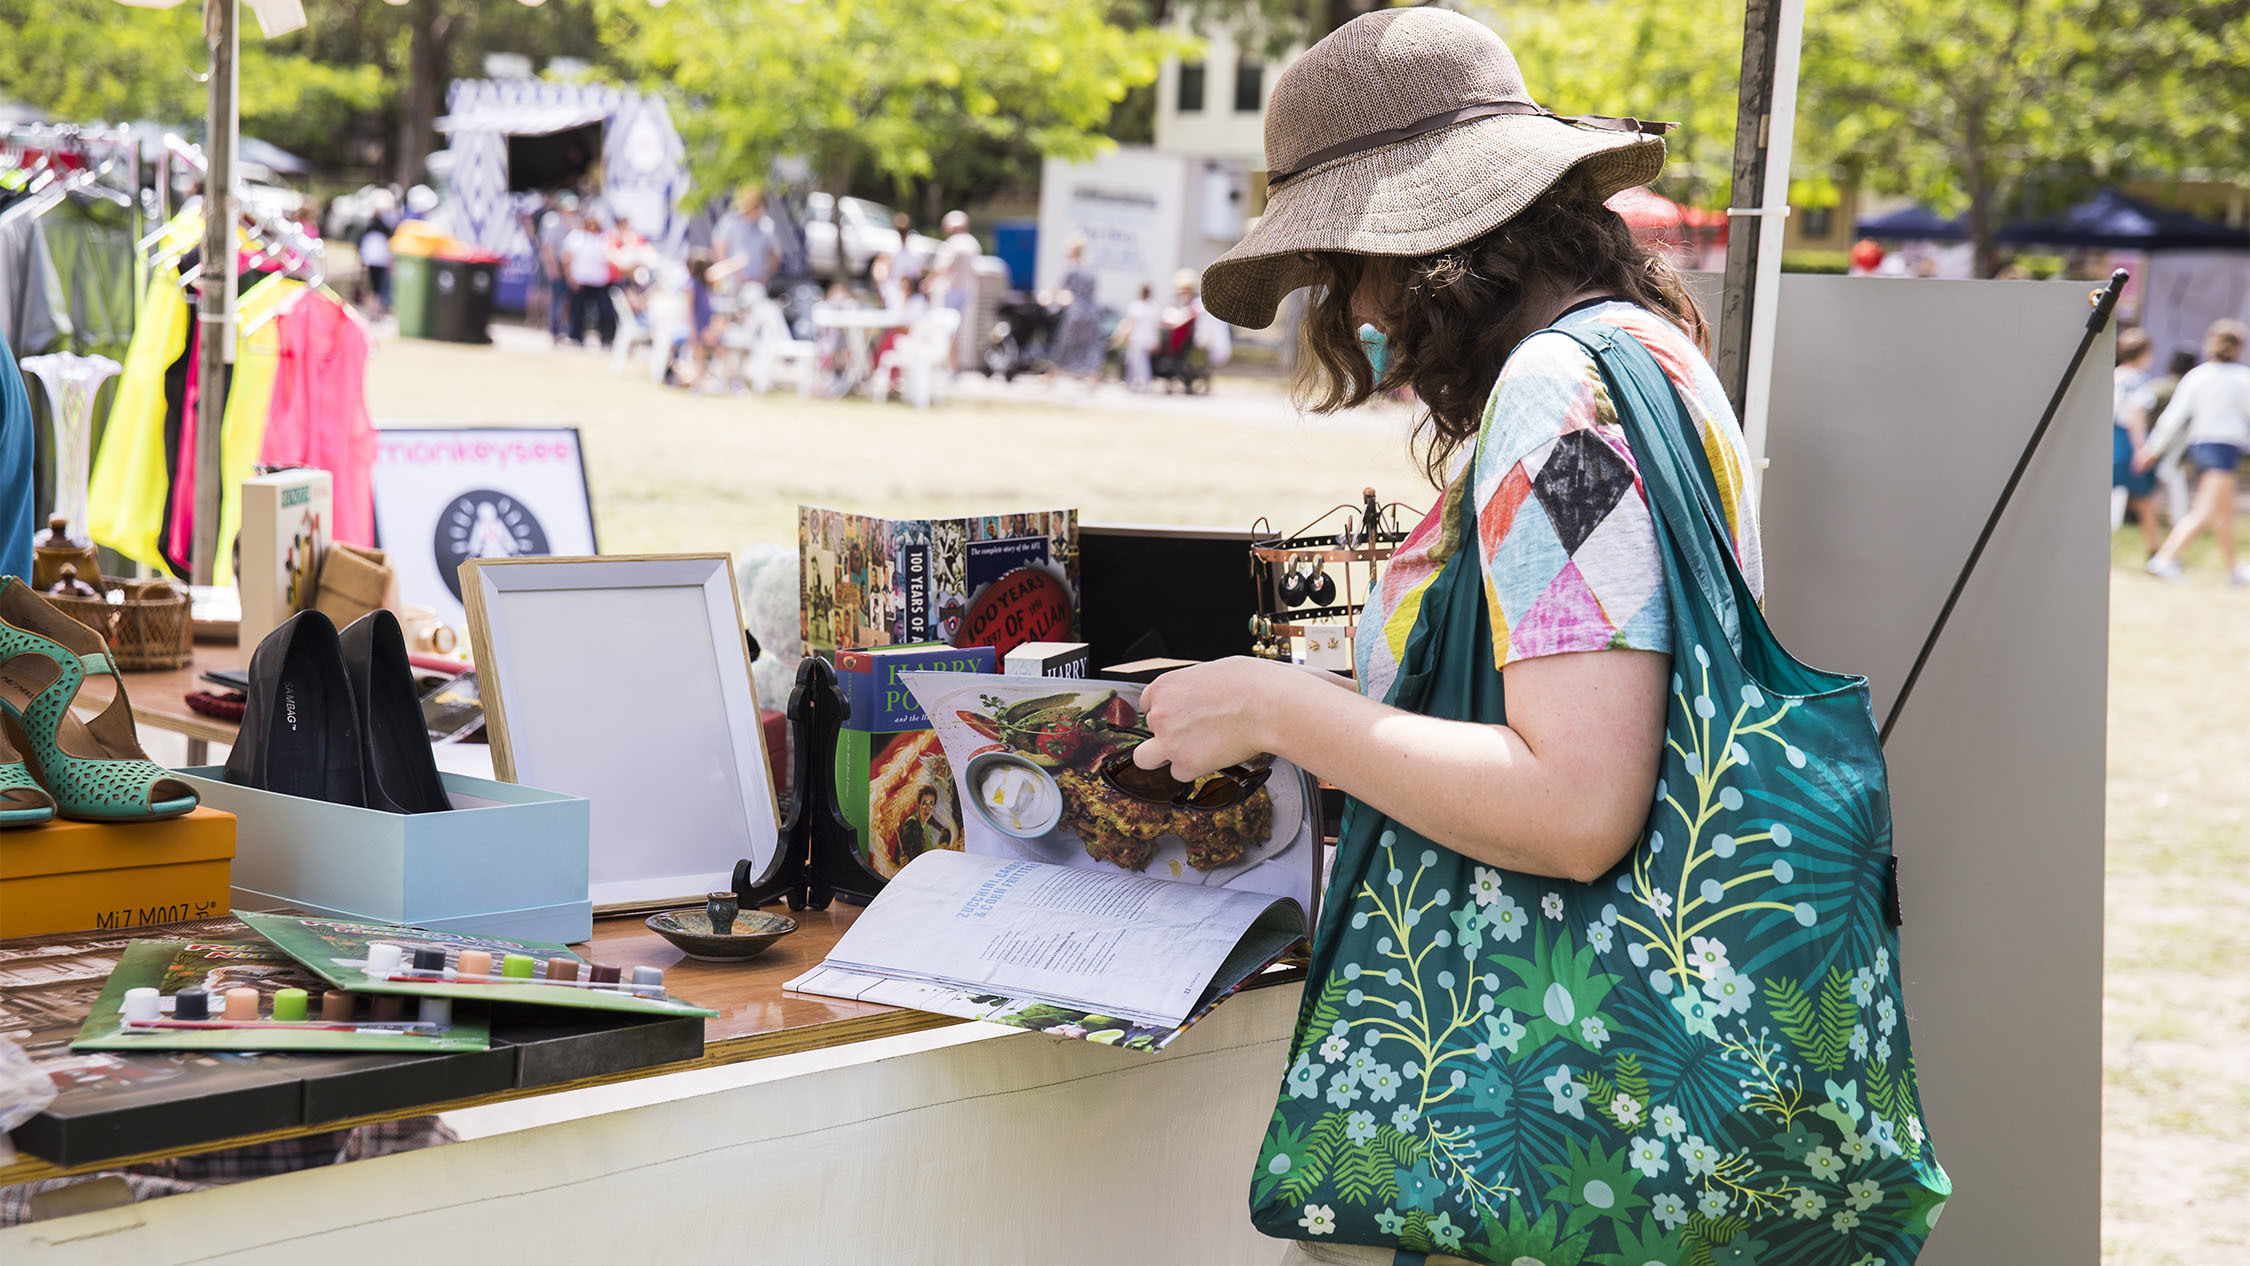 DONOTUSE - Best Gift Market at Alison Park, Randwick 2019